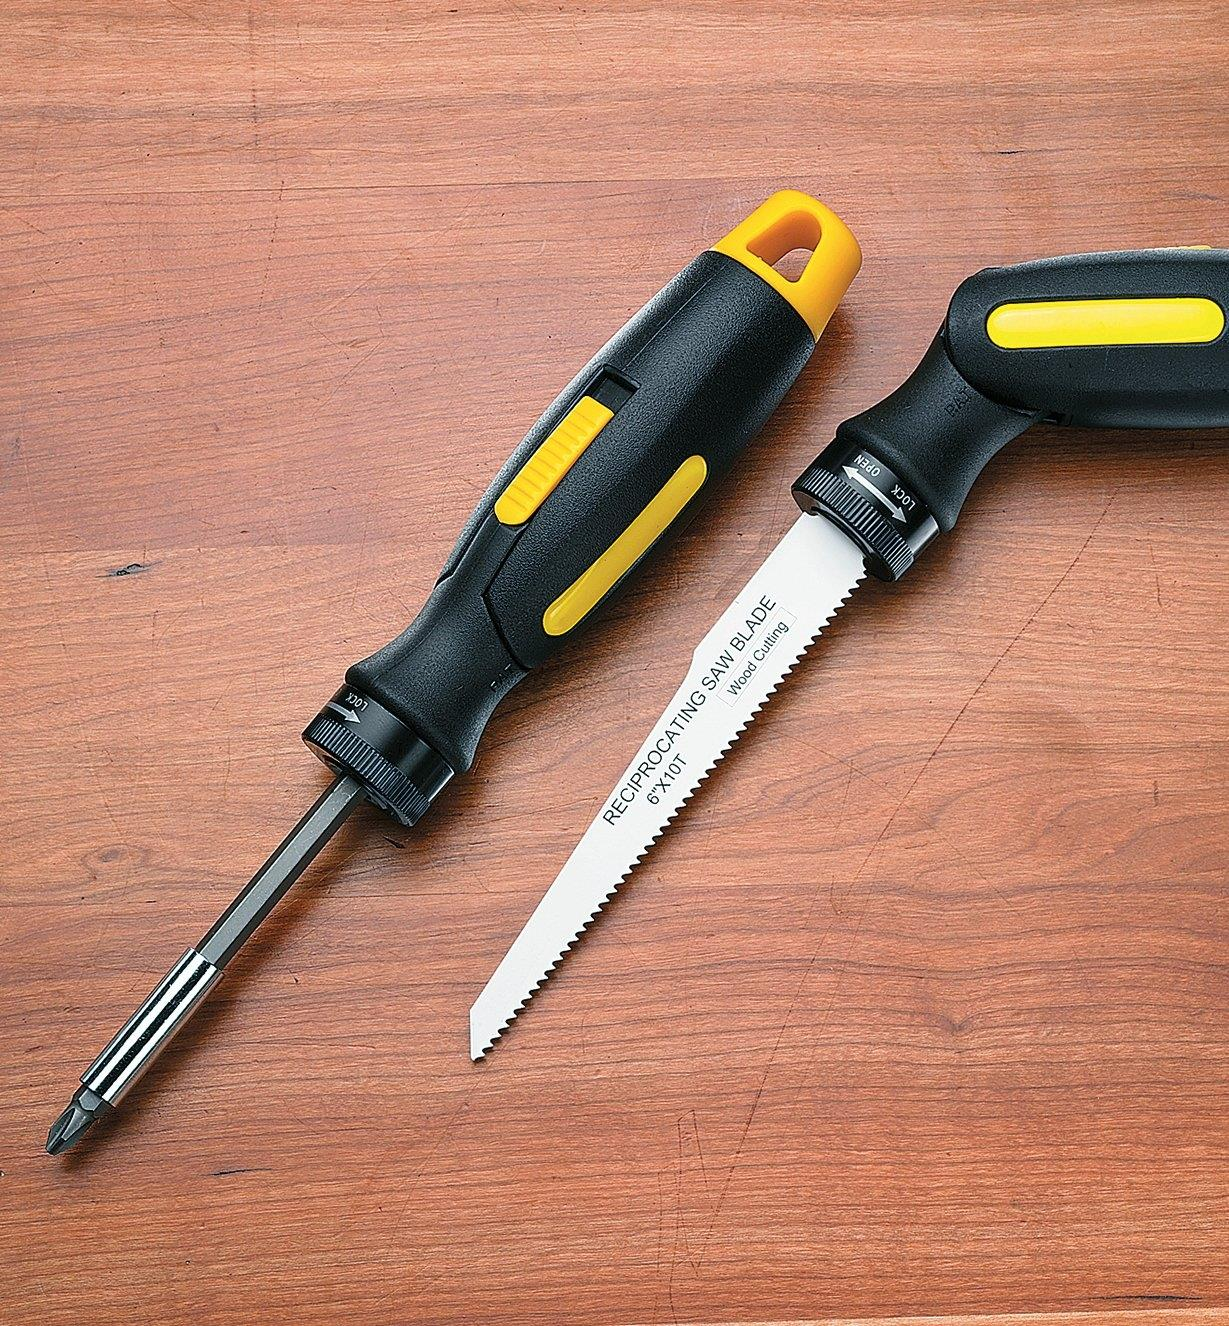 88K1120 - Reciprocating Saw Blade & Screwdriver Handle